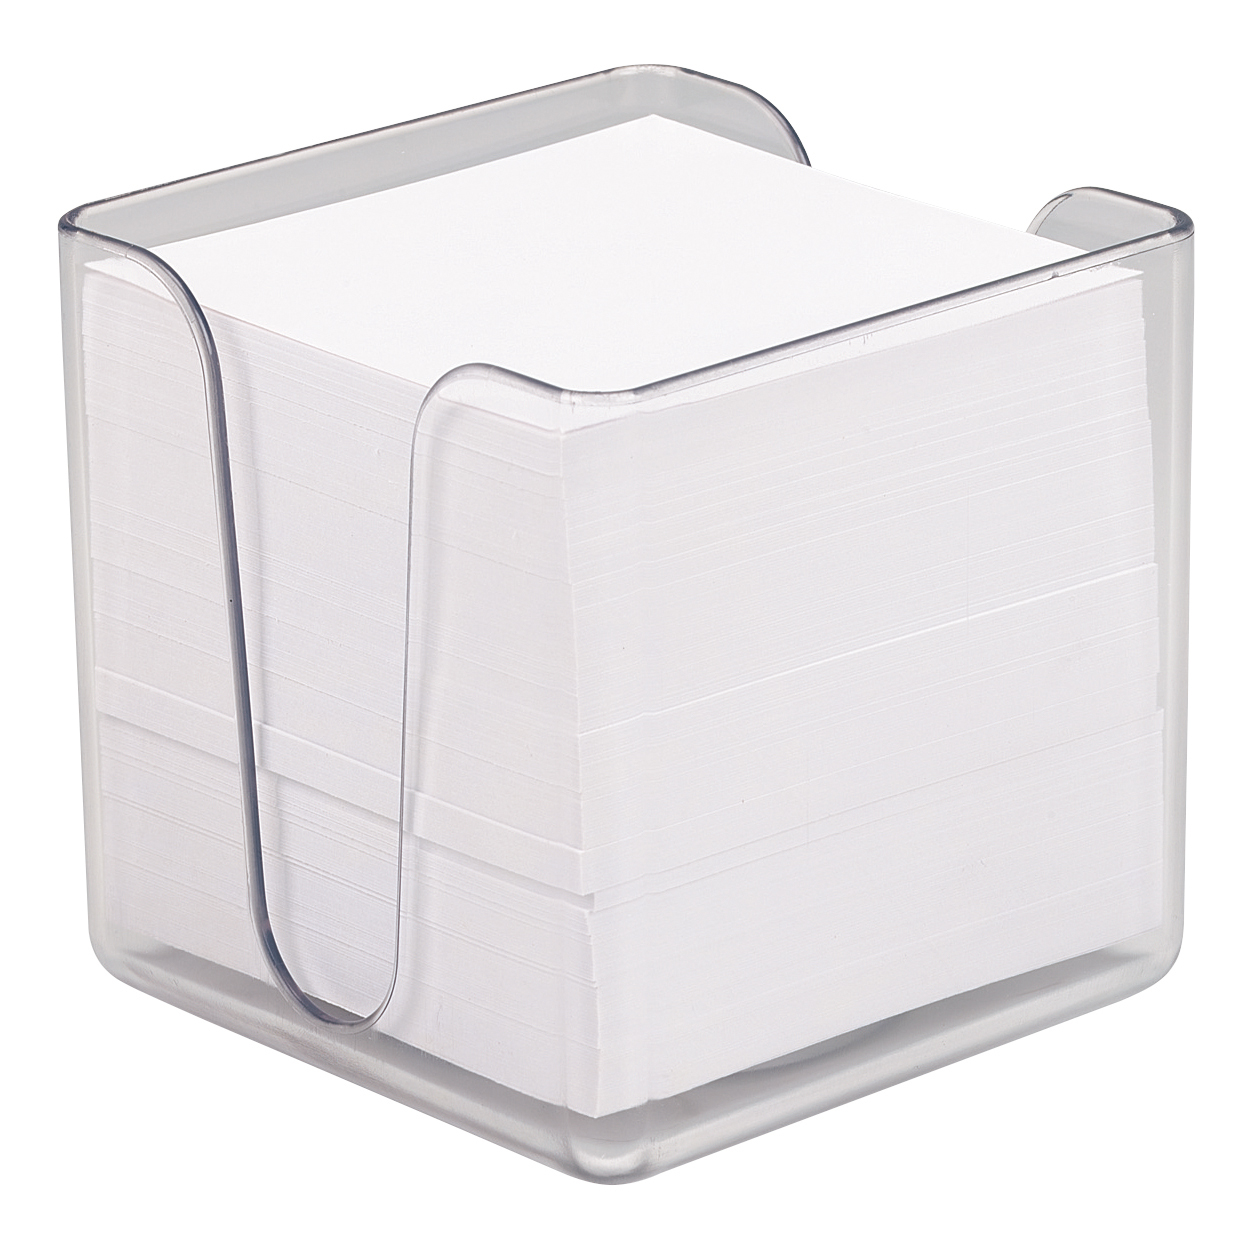 5 Star Office Noteholder Cube Transparent with Approx. 750 Sheets of Plain Paper 90x90mm White